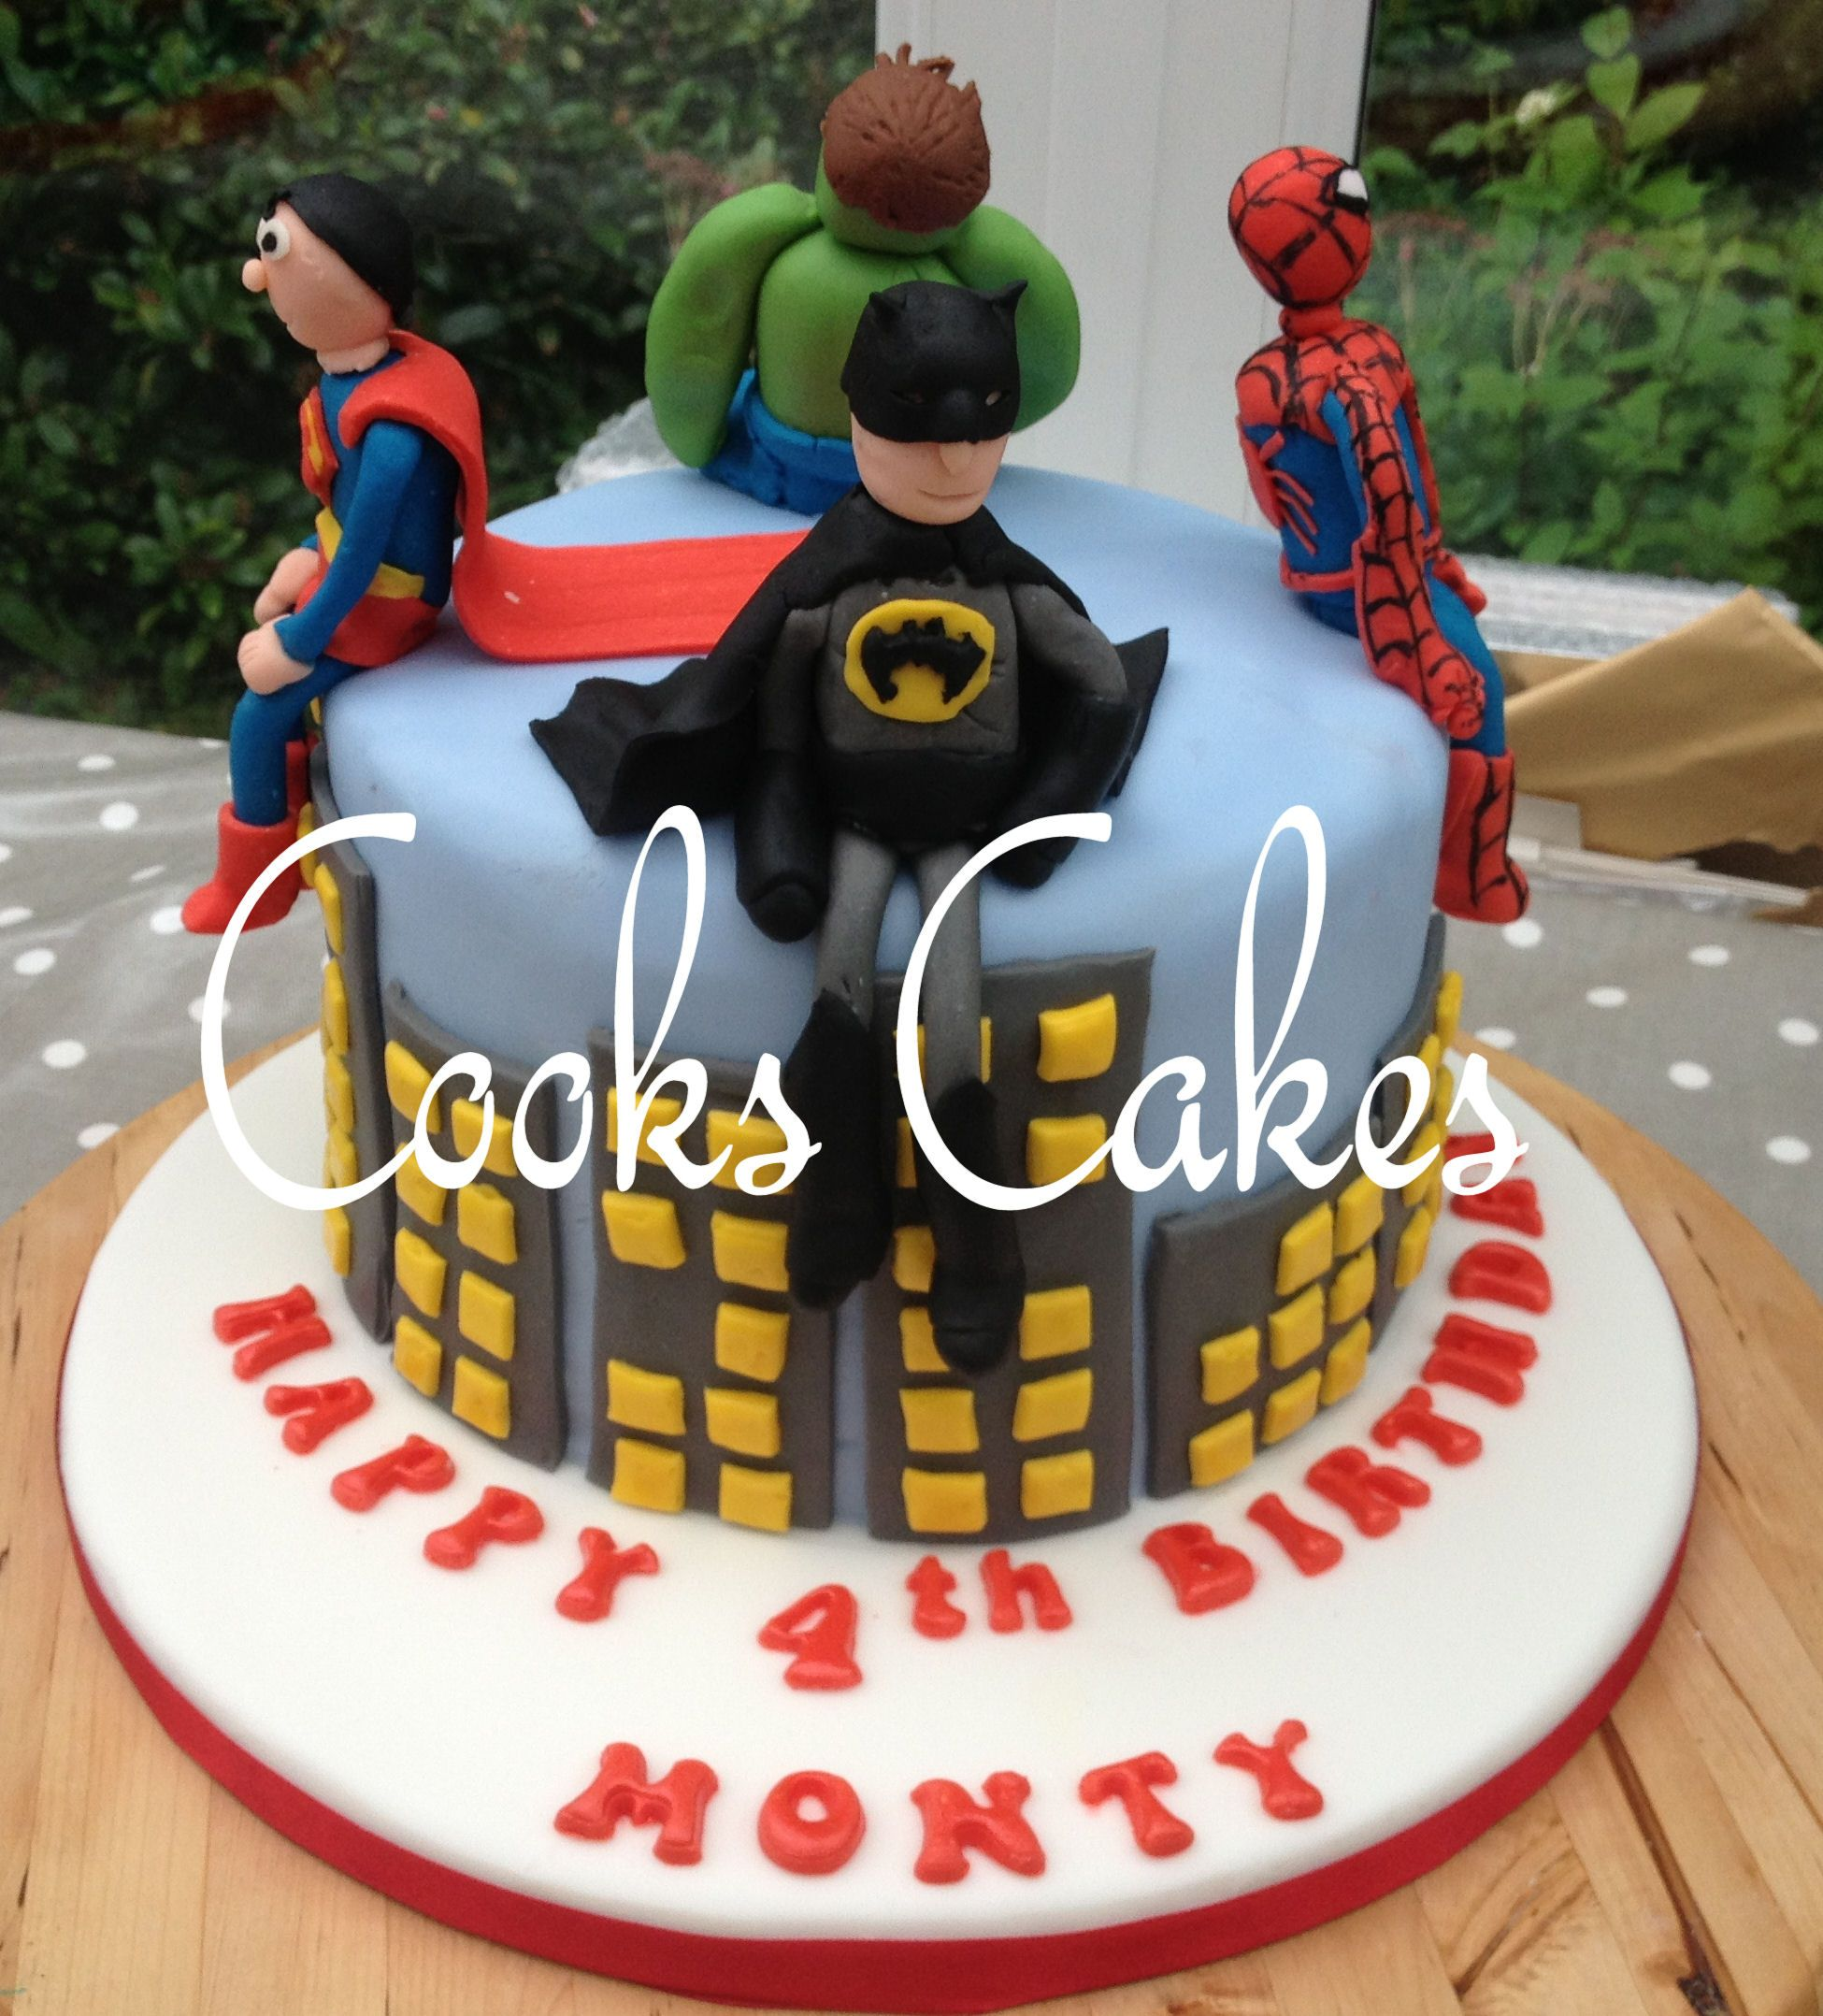 Birthday Cake For A 4 Year Old Boy Superheros Batman Spiderman Superman Hulk